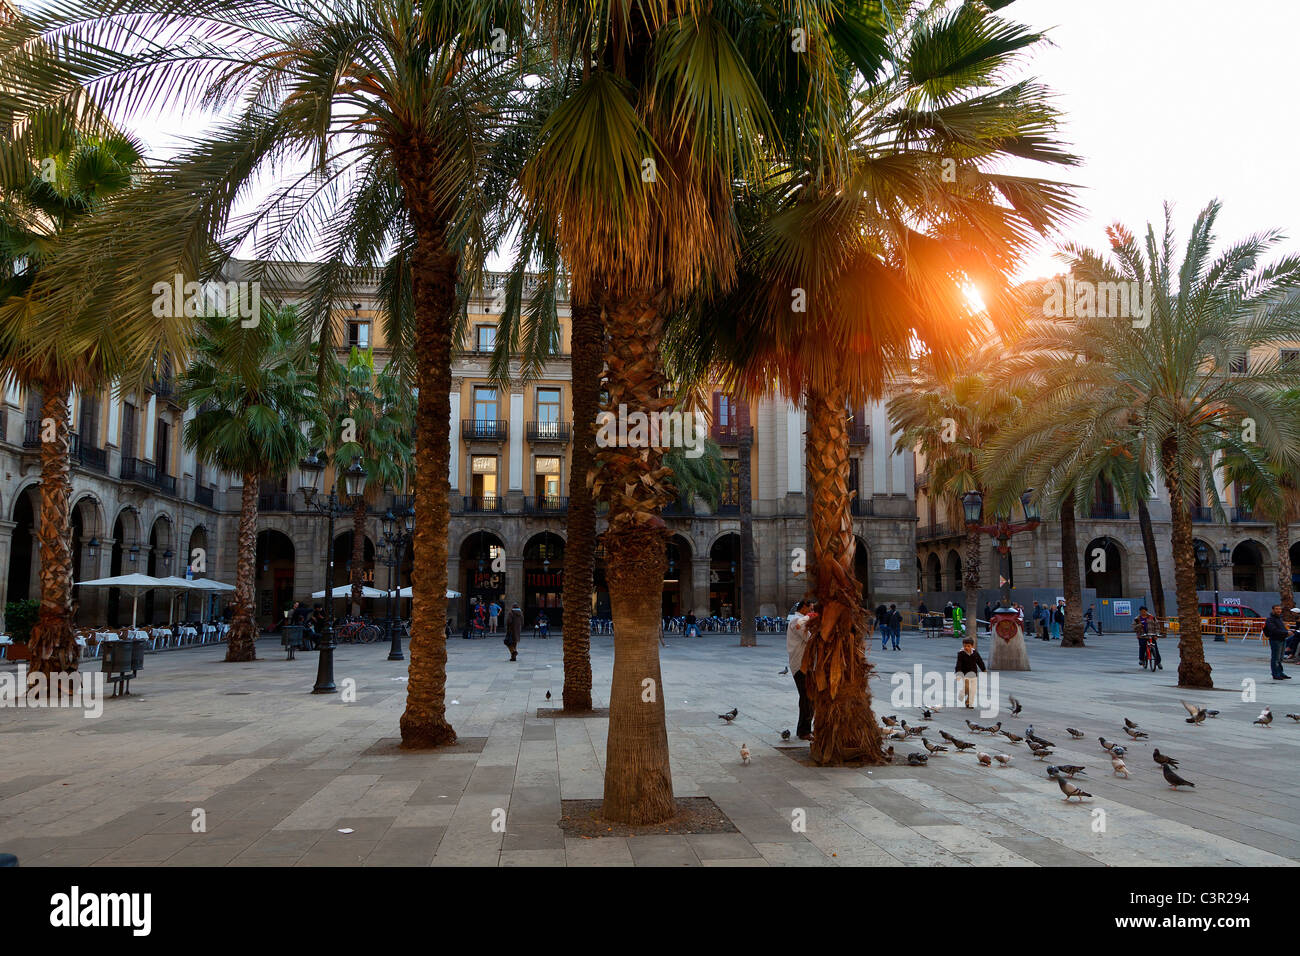 Spain, Catalonia, Barcelona, Barri Gotic district, Placa reial - Stock Image